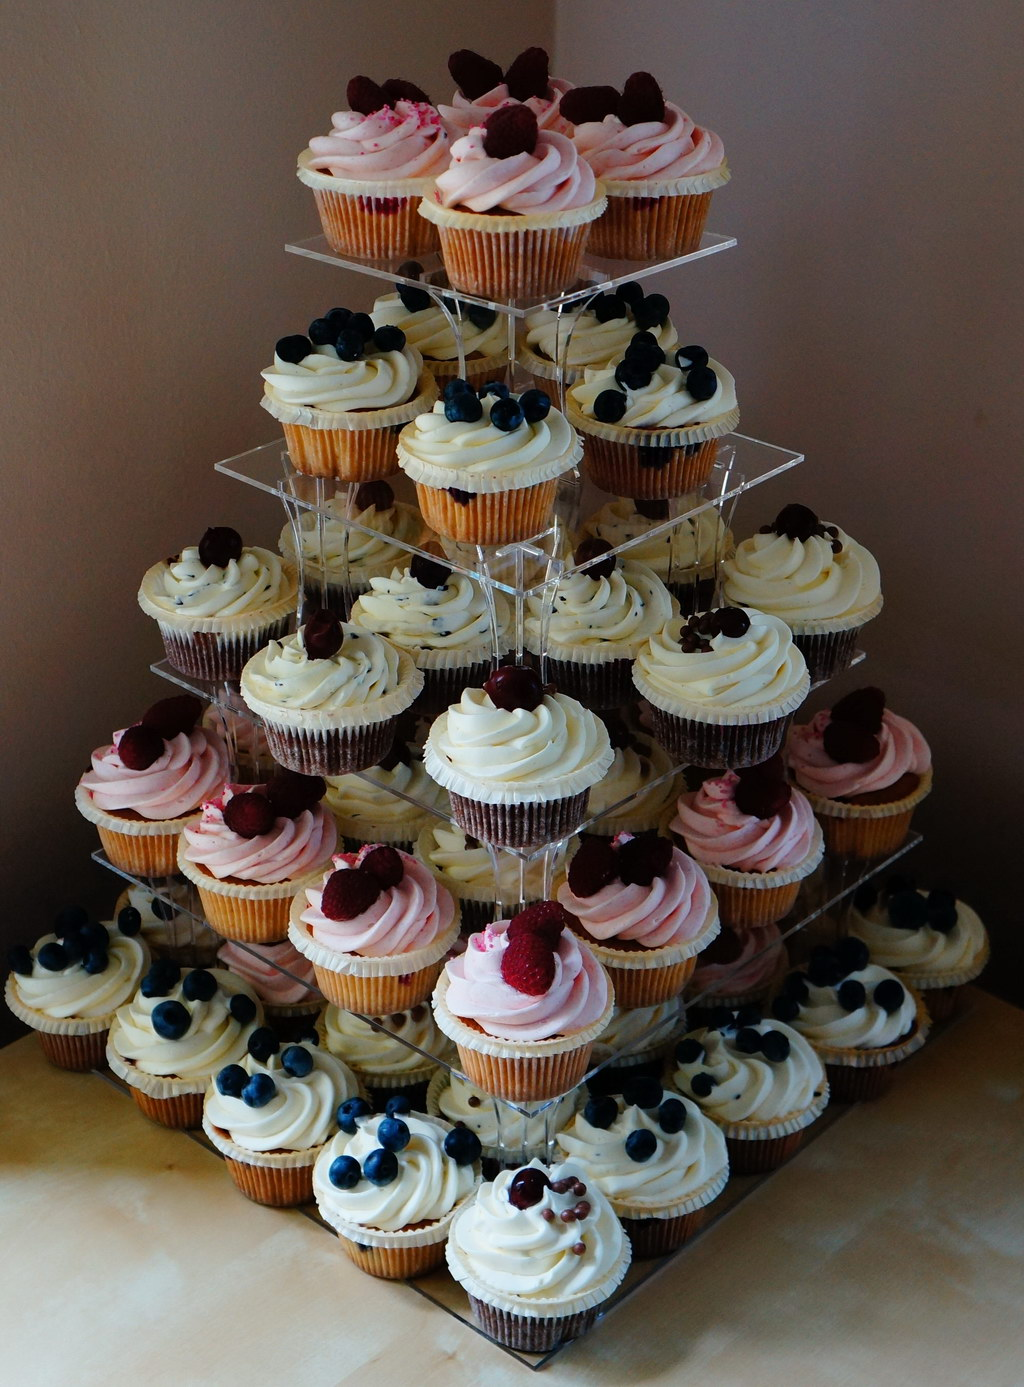 london patisserie wedding cupcakes cake. Black Bedroom Furniture Sets. Home Design Ideas